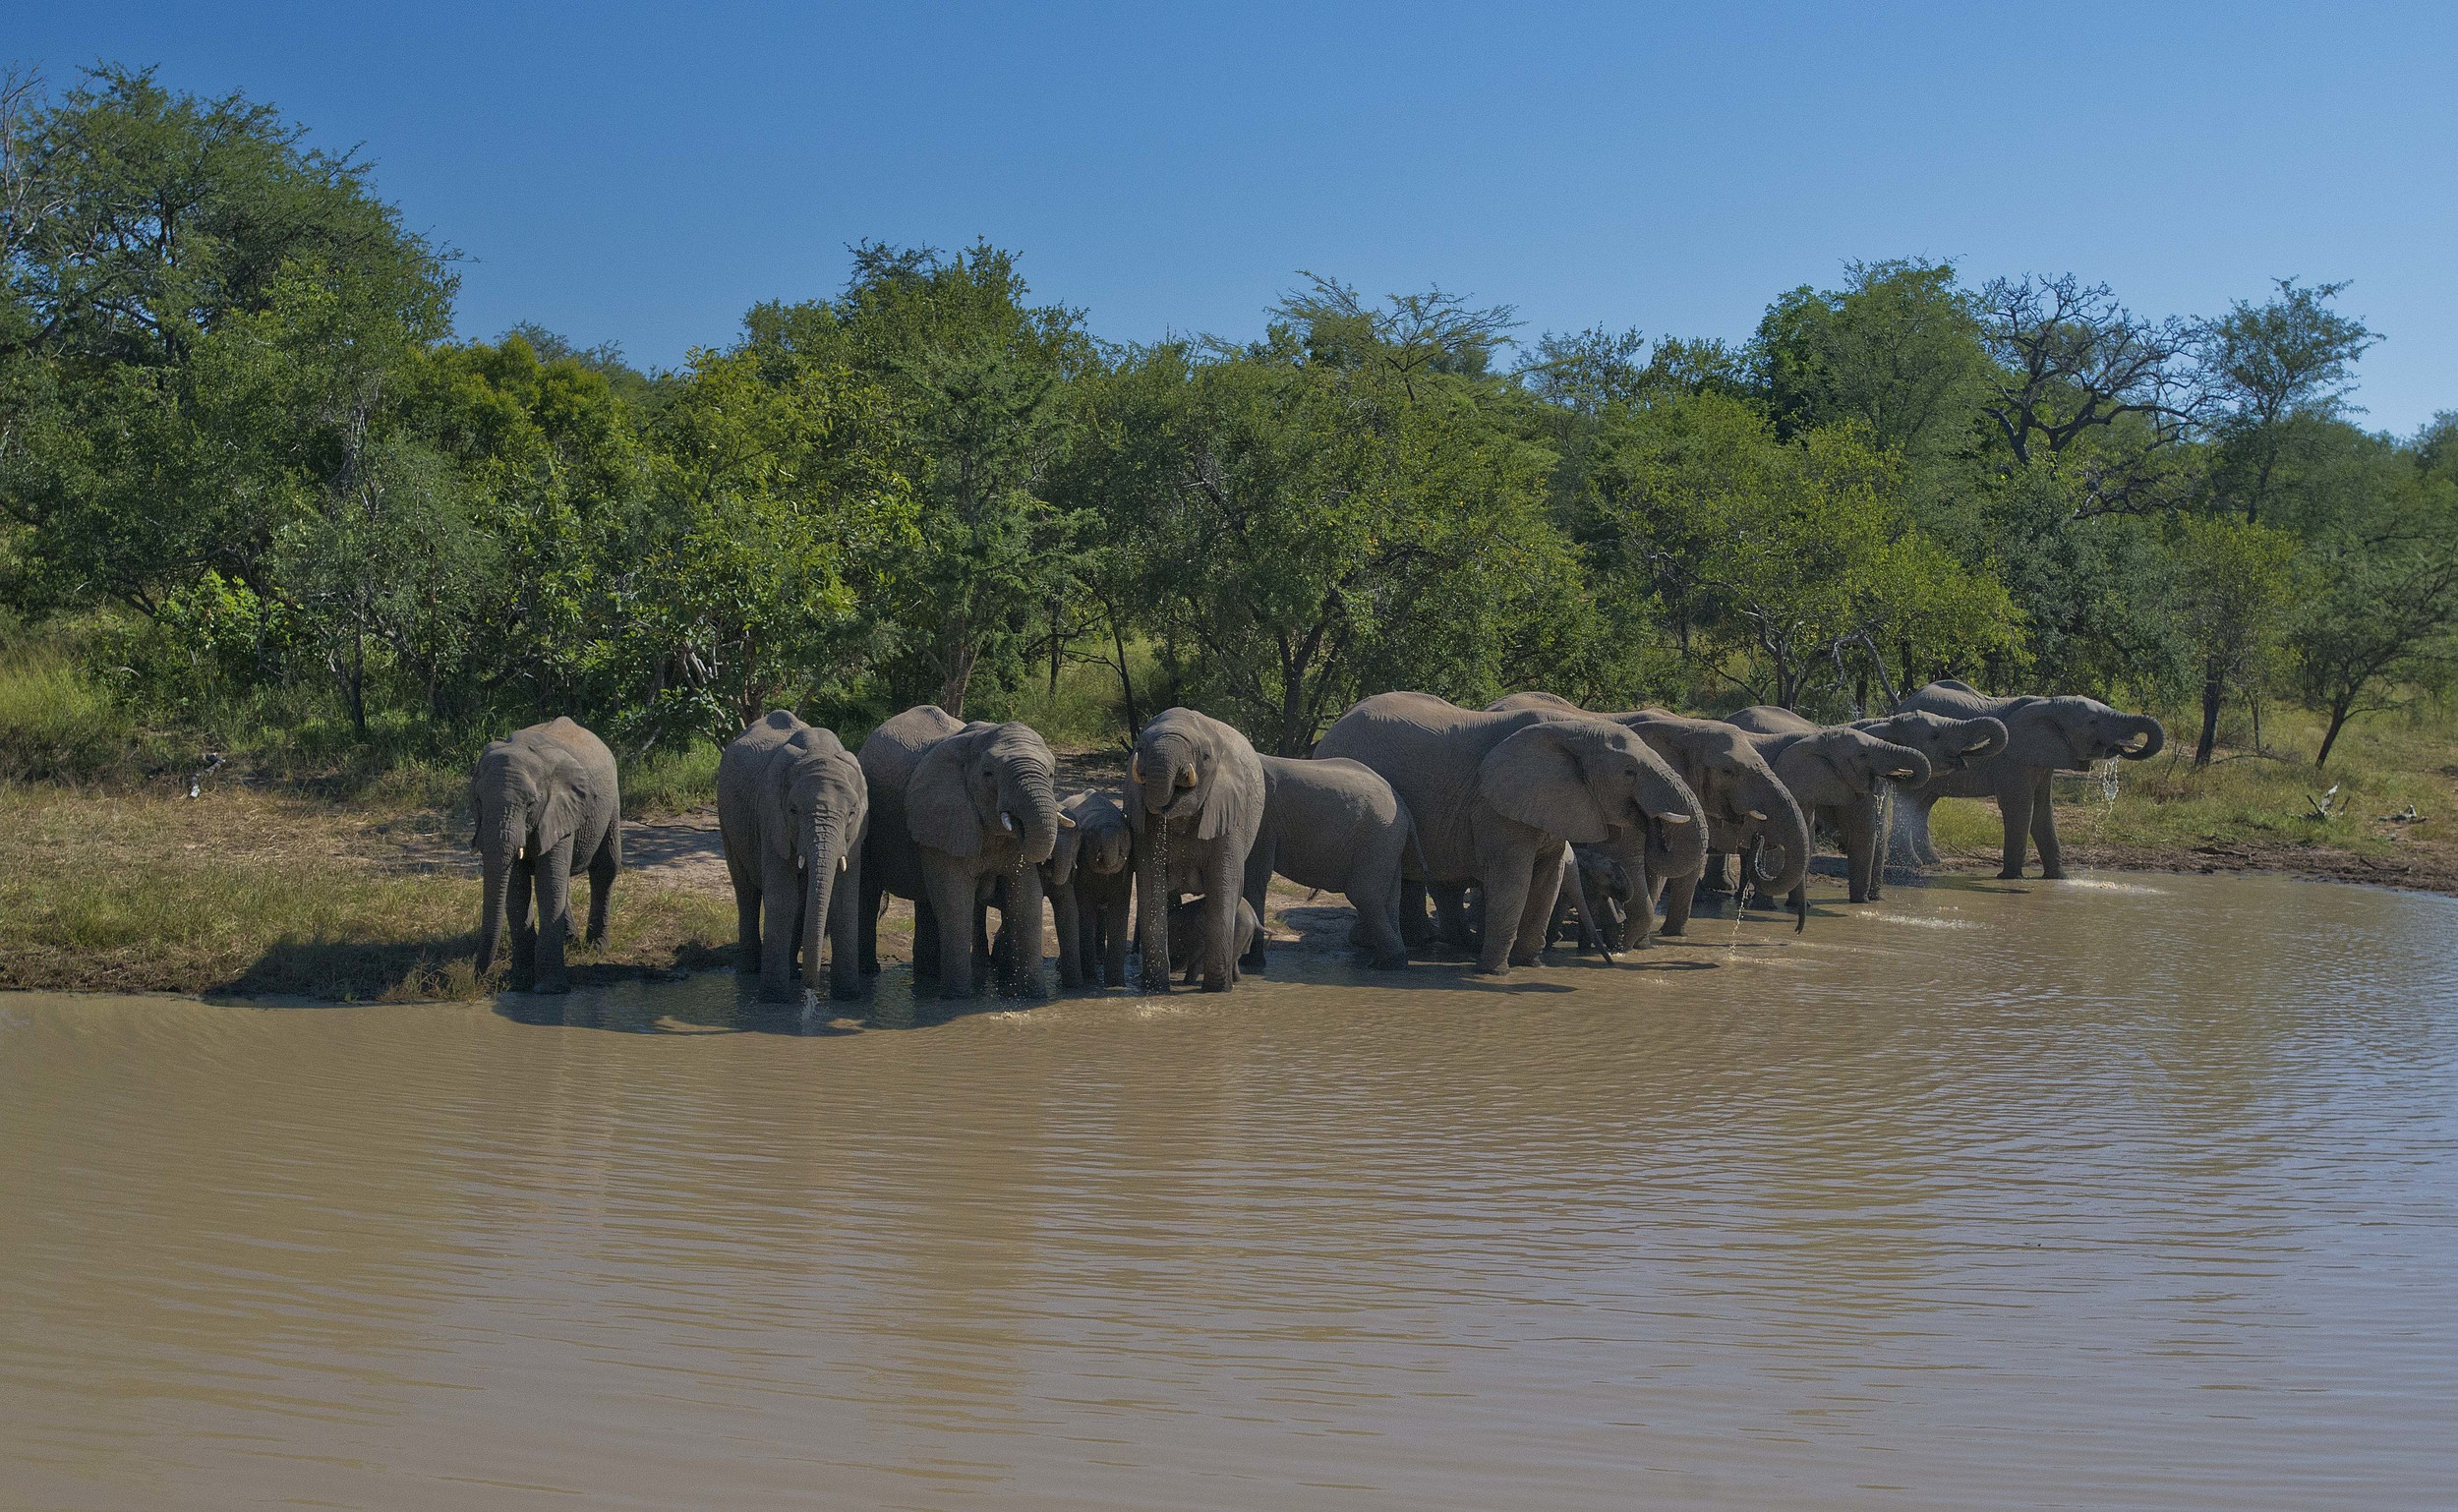 130420_DSC3290 Elephant Herd at the Watering Hole.jpg